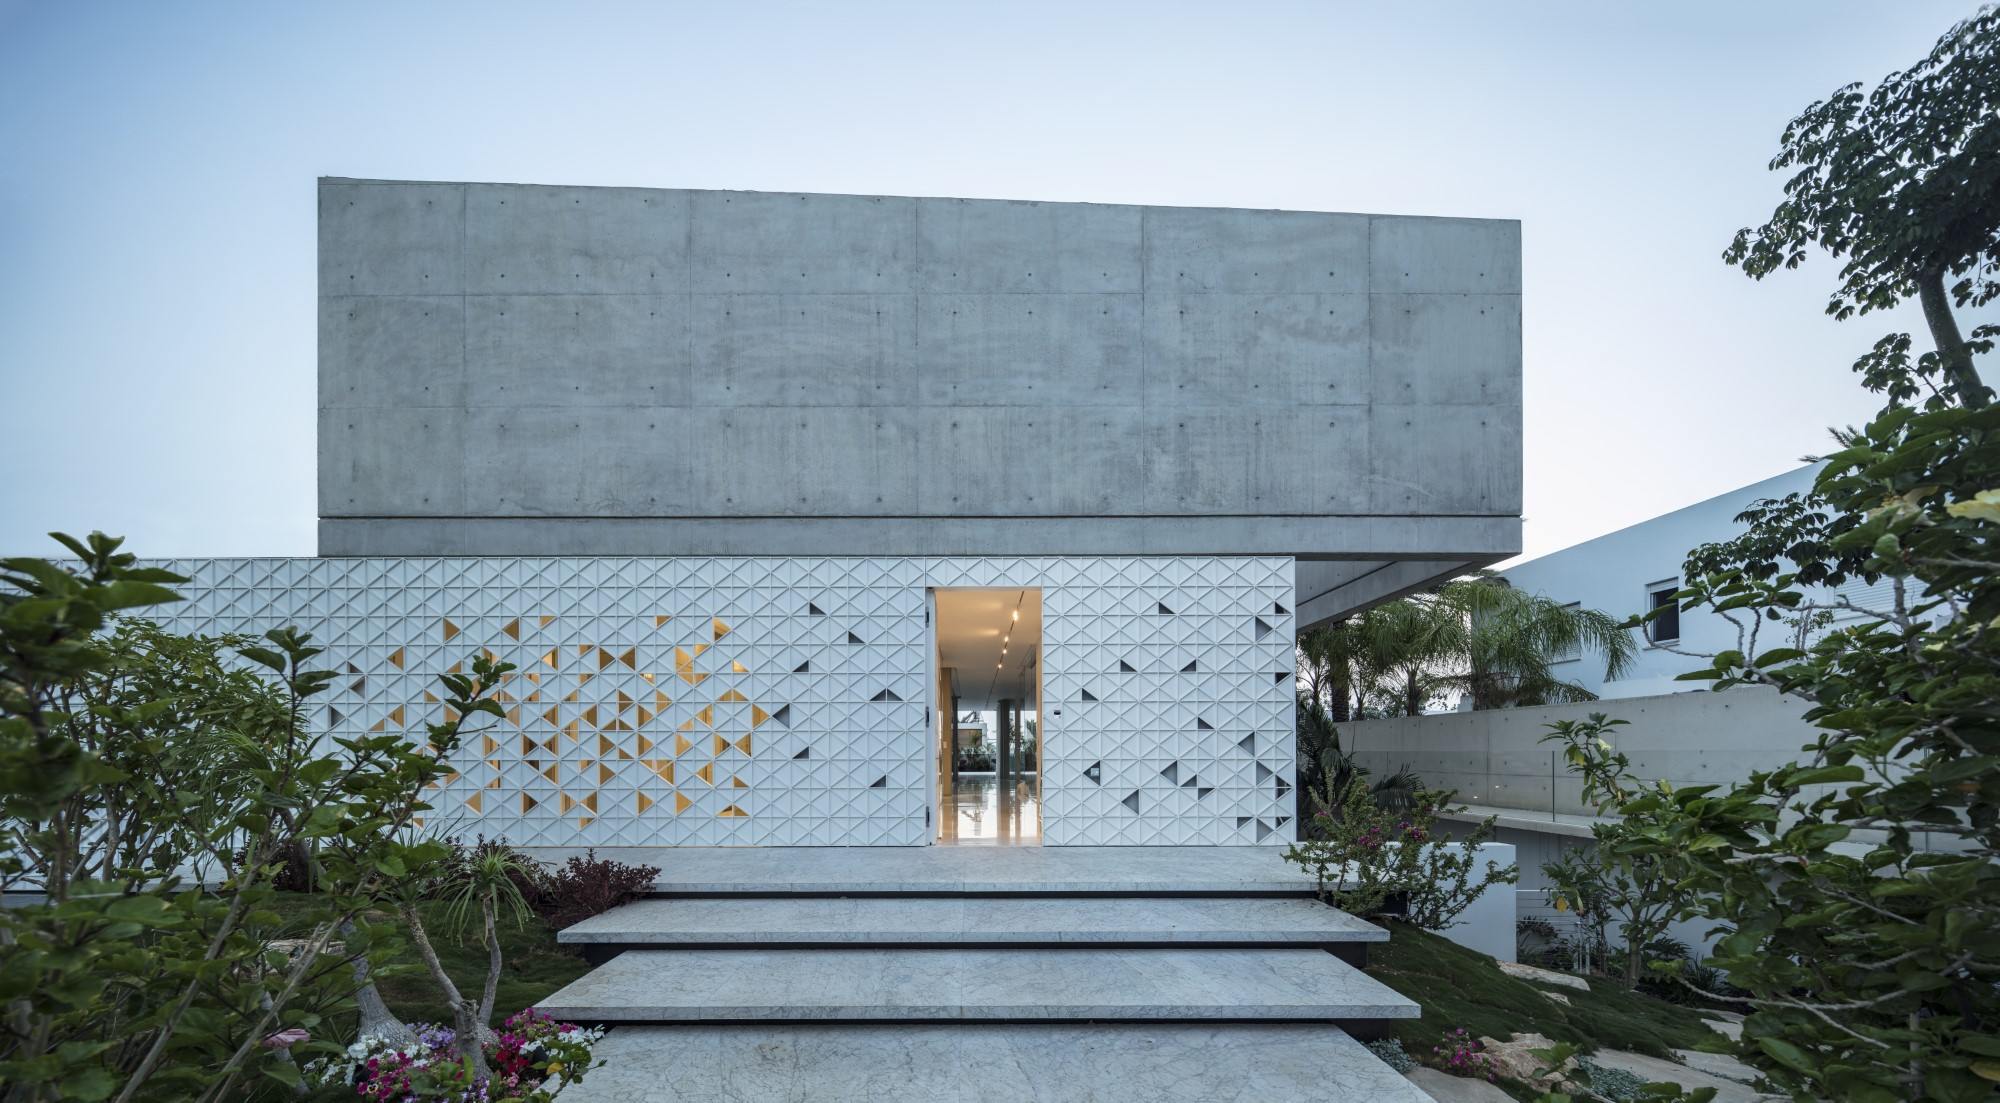 Triangle perforated metal - Pitsou Kidem's D3 House